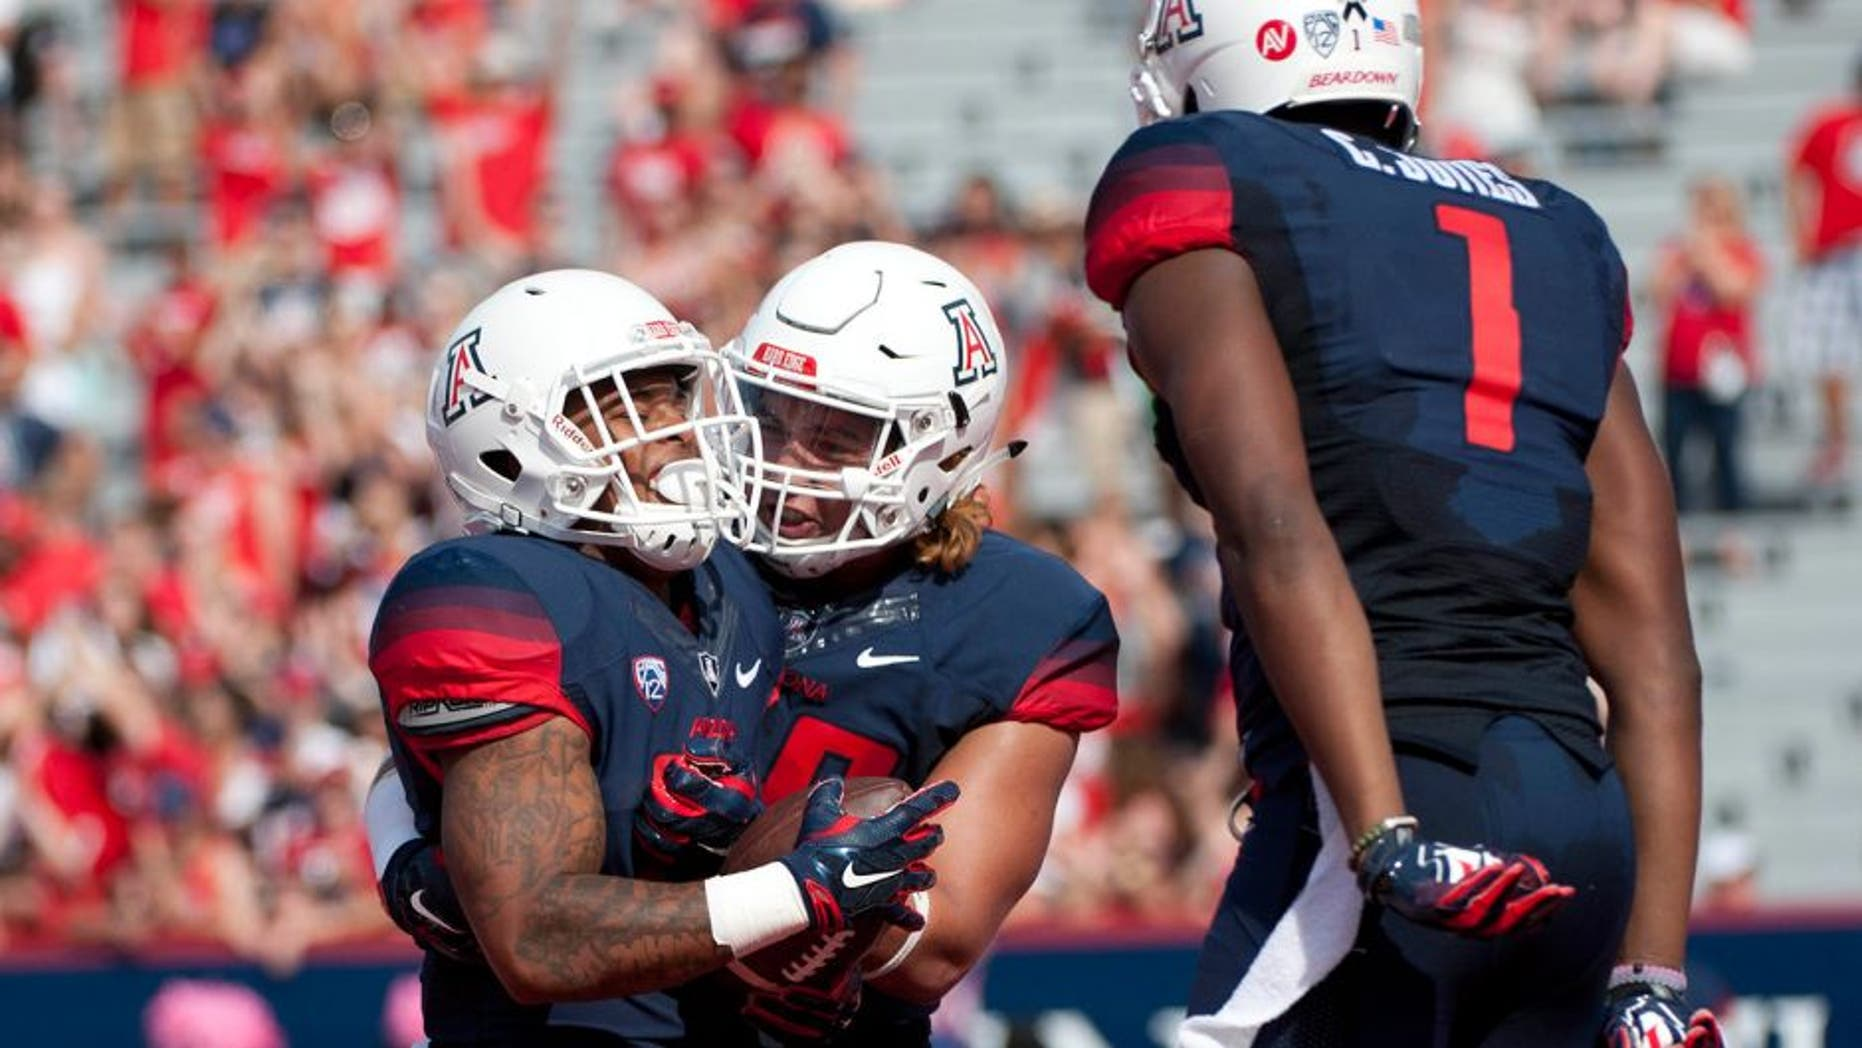 Oct 10, 2015; Tucson, AZ, USA; Arizona Wildcats running back Orlando Bradford (21) is congratulated by offensive lineman Layth Friekh (58) and wide receiver Cayleb Jones (1) after scoring a touchdown during the second quarter against the Oregon State Beavers at Arizona Stadium. Mandatory Credit: Casey Sapio-USA TODAY Sports